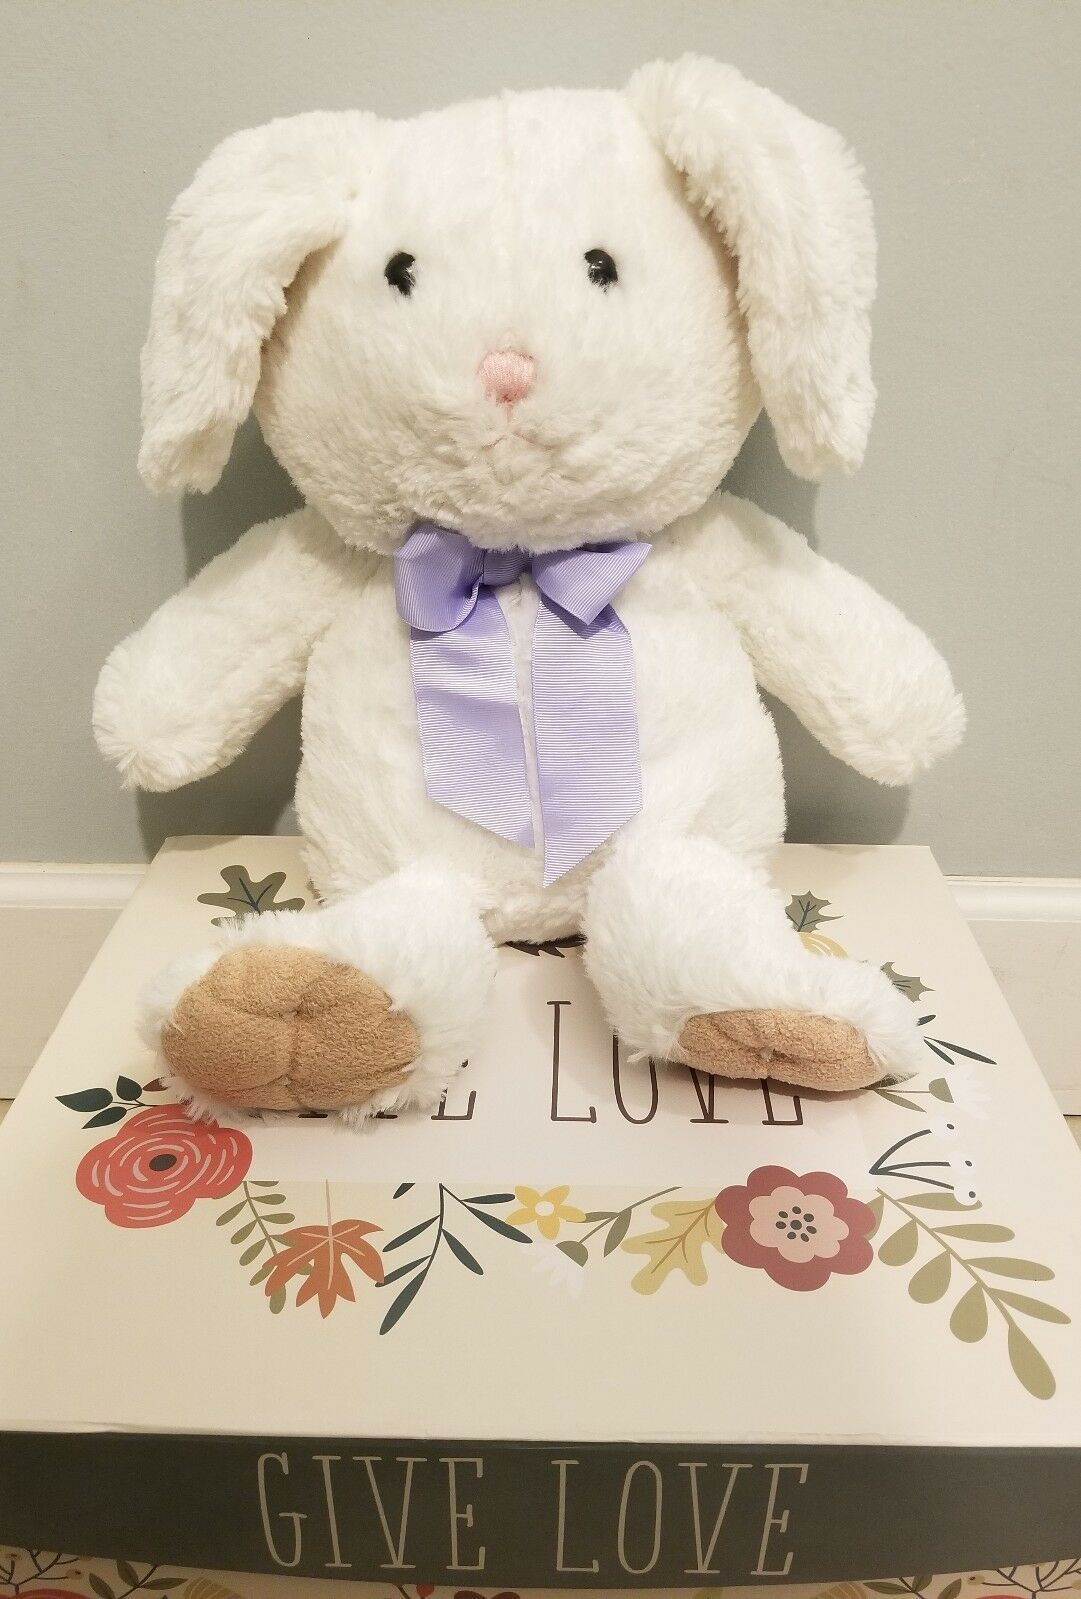 Primary image for ANIMAL ADVENTURE BUNNY RABBIT STUFFED PLUSH SOFT TOY EASTER PURPLE BOW 2014 KIDS